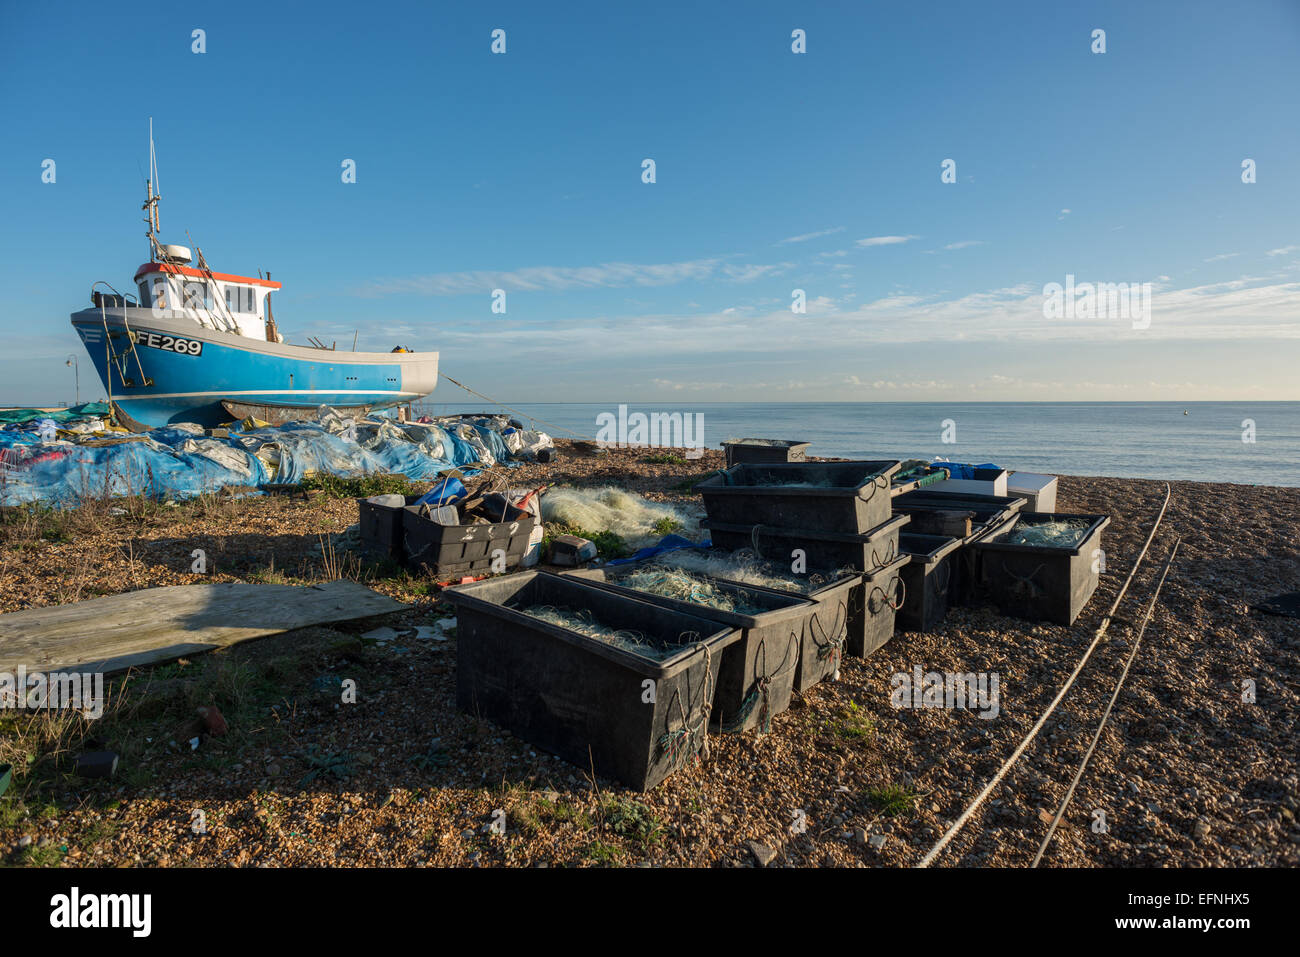 Fishing boat on the beach at Hythe, Kent. - Stock Image